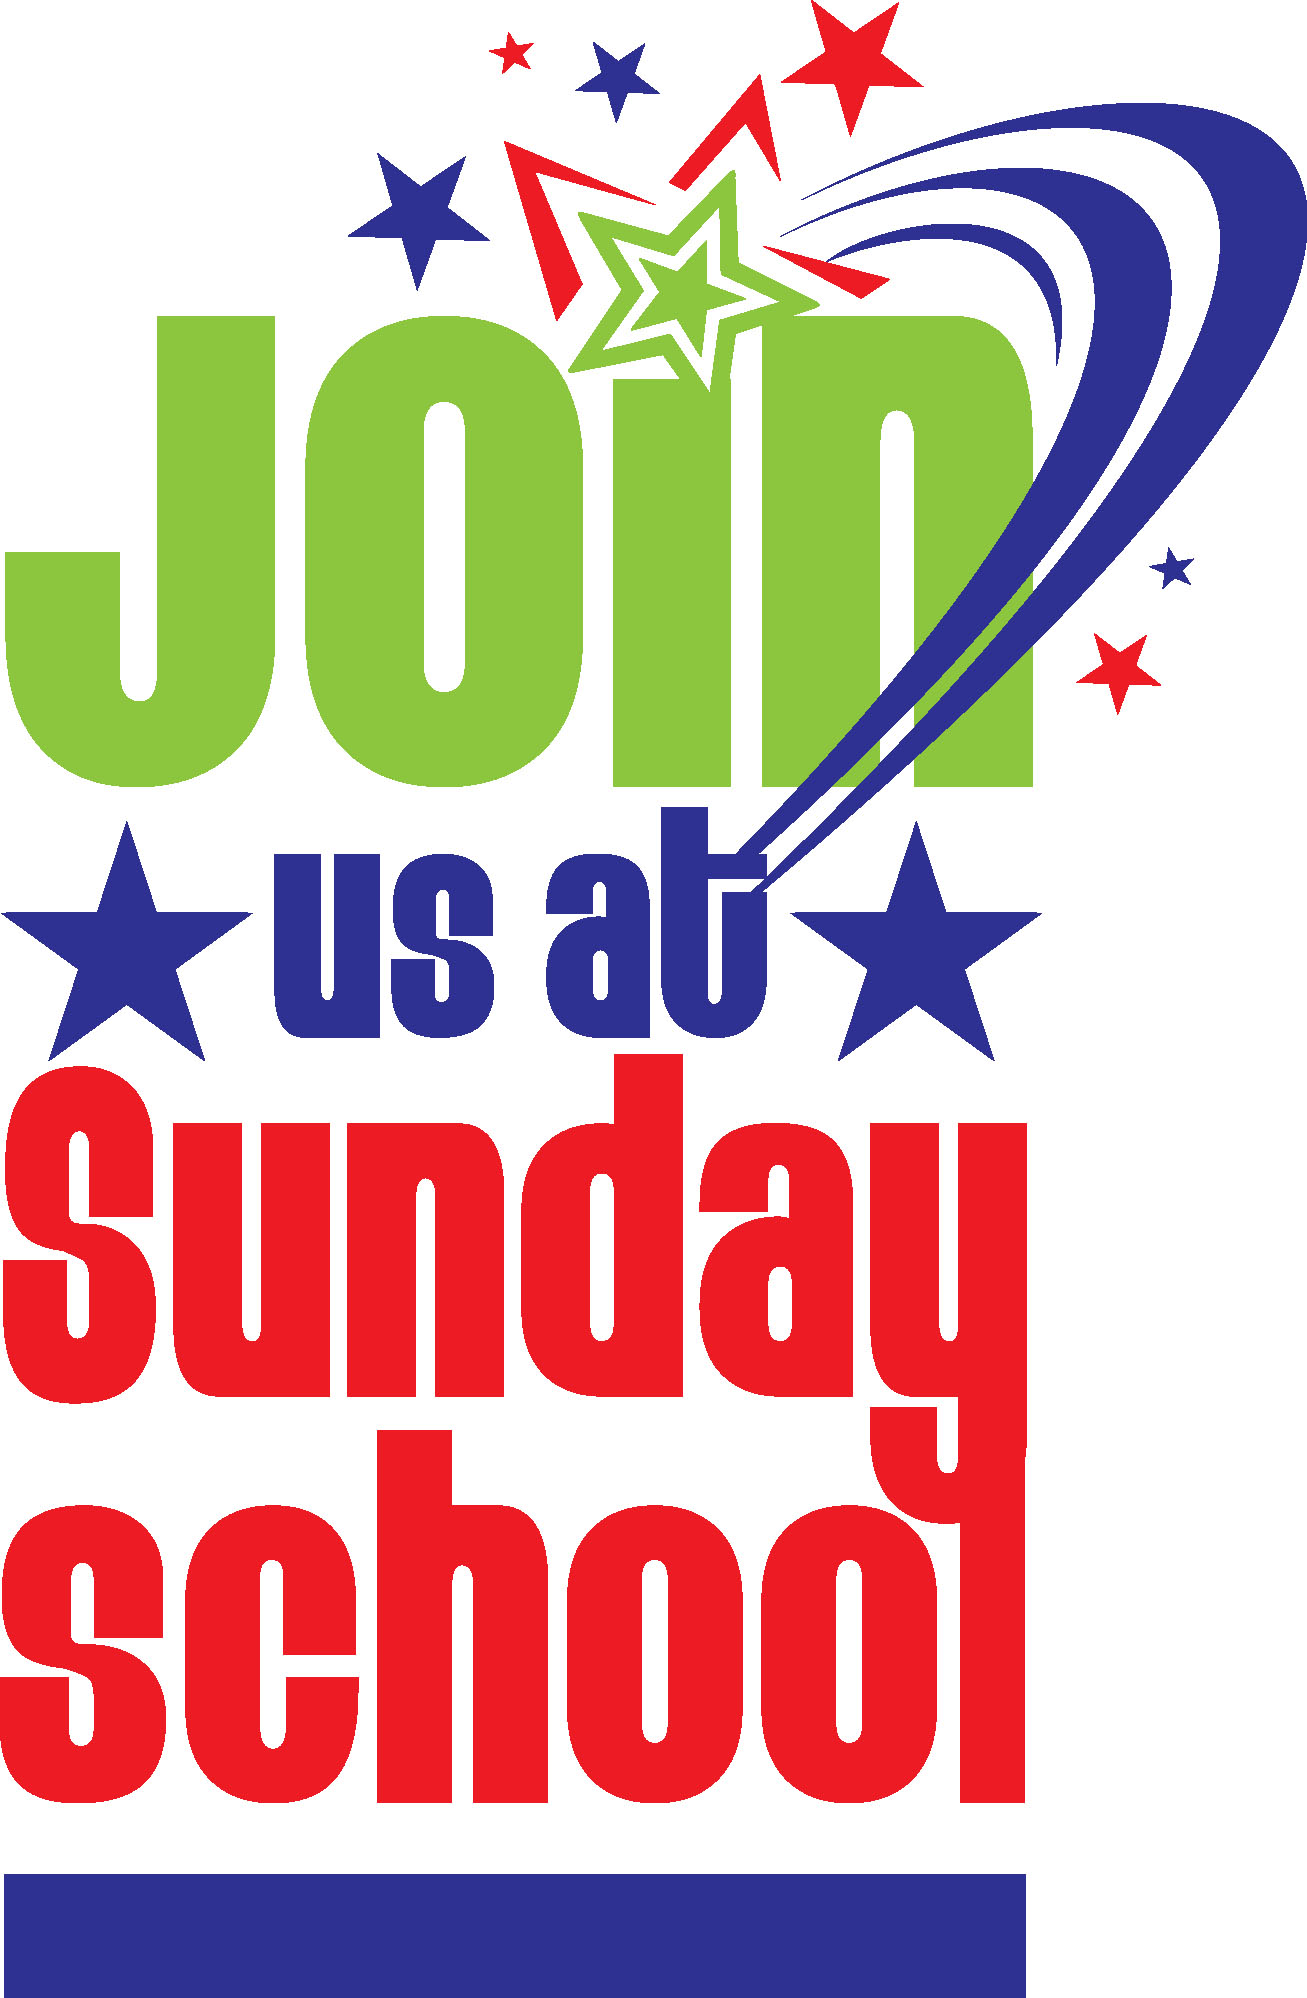 Reminder clipart annual meeting. Sunday school